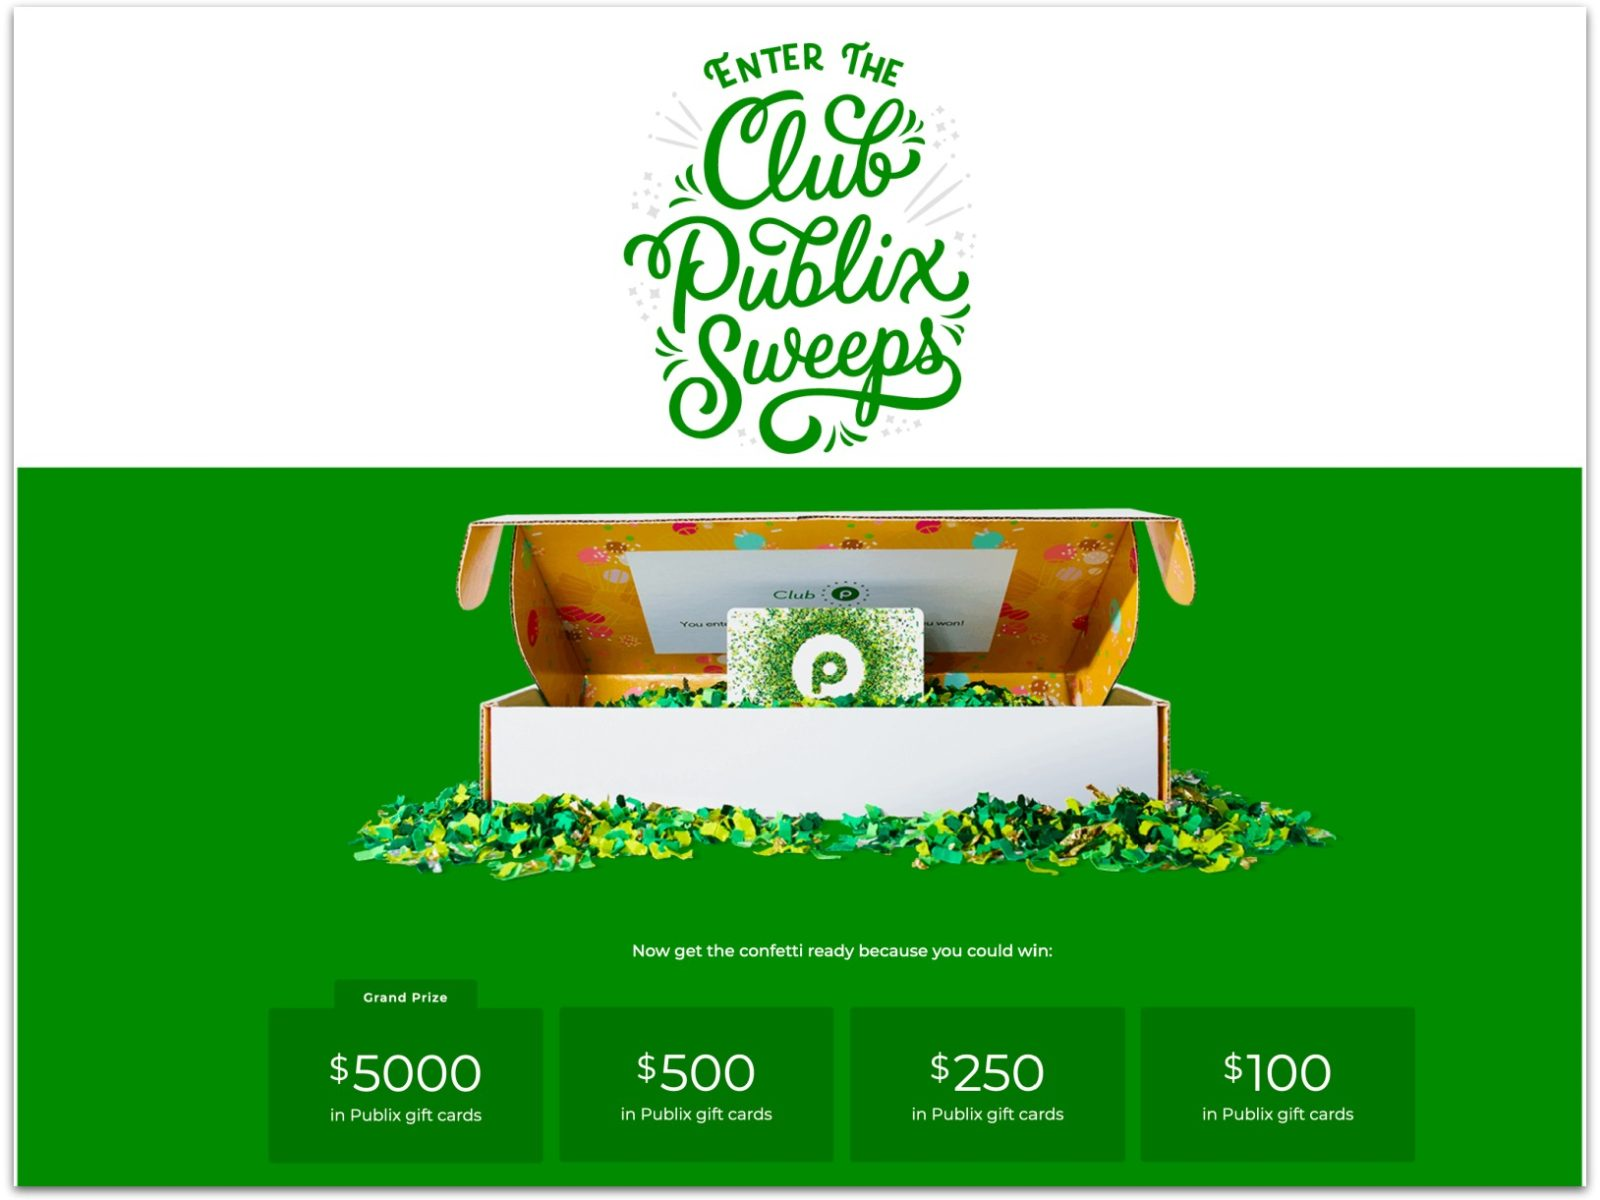 Win Big With The Club Publix Sweepstakes (Ends 10/7) on I Heart Publix